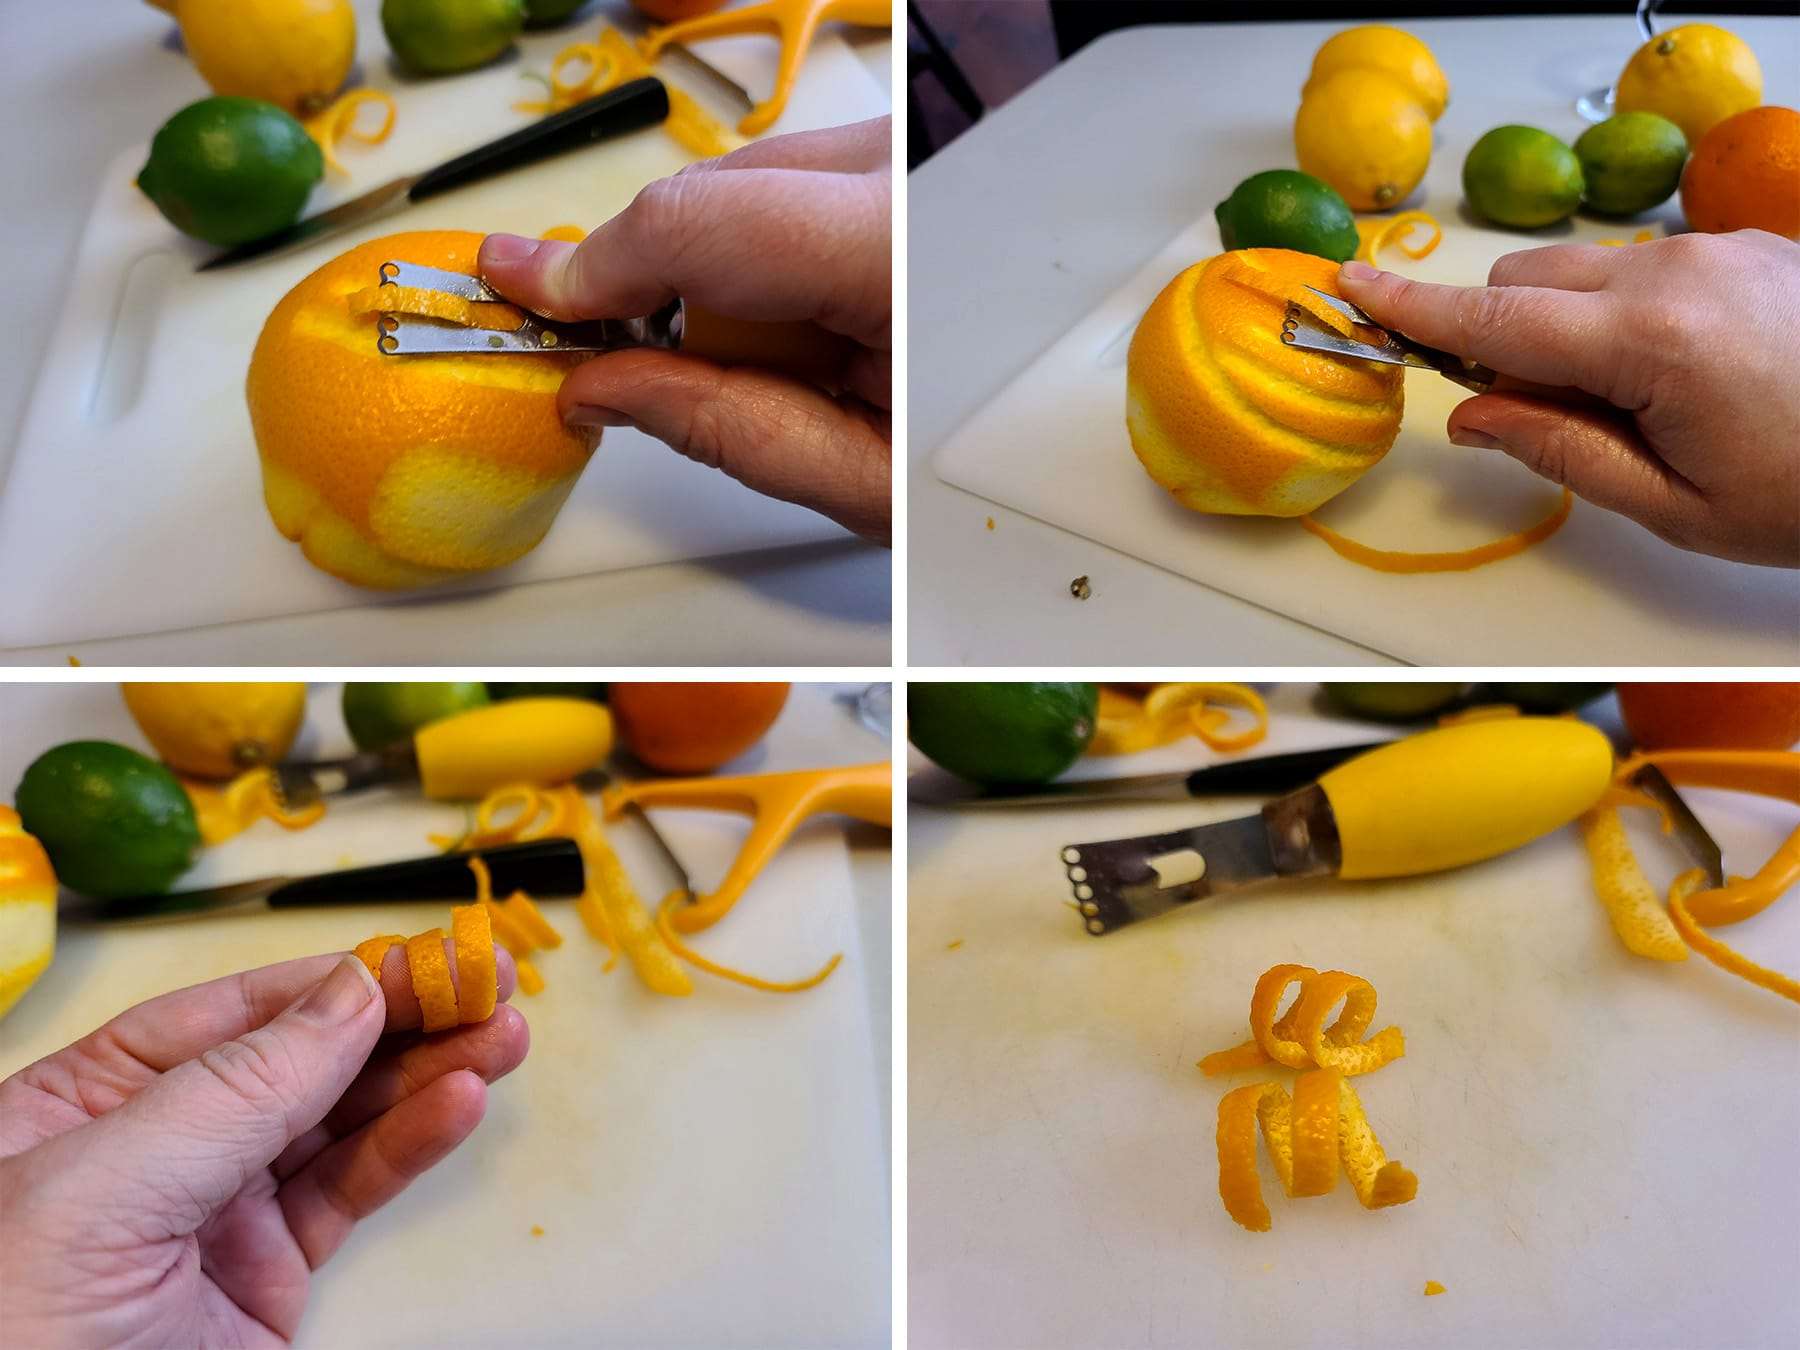 a 4 part compilation image showing a channel knife cutting a long curl of orange peel, and it being twisted.